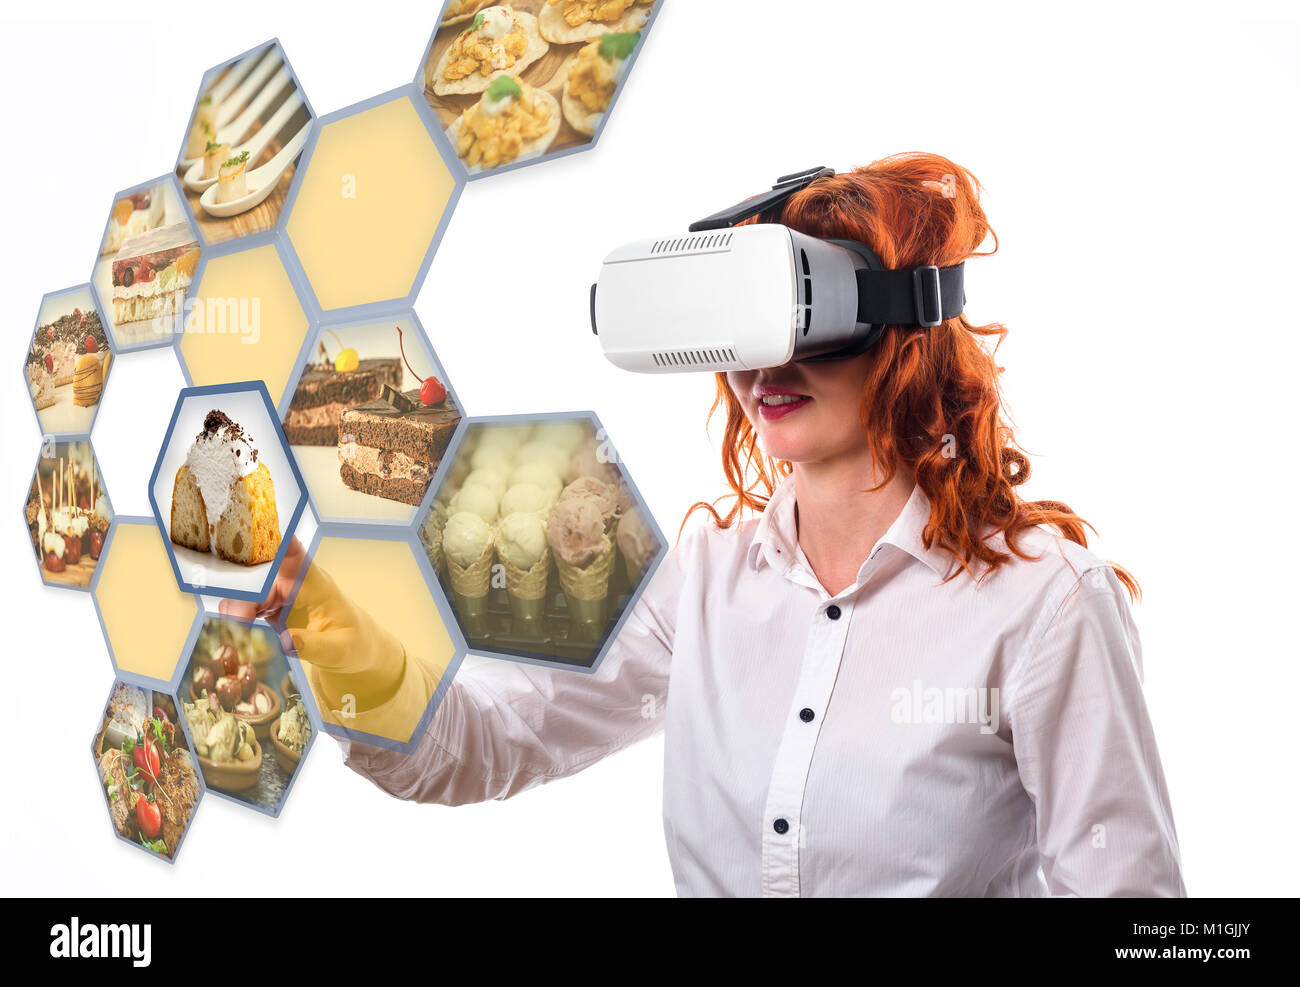 VR headset on a digital interface in restaurant touching a option, interacts with cyberspace, head shot - Stock Image